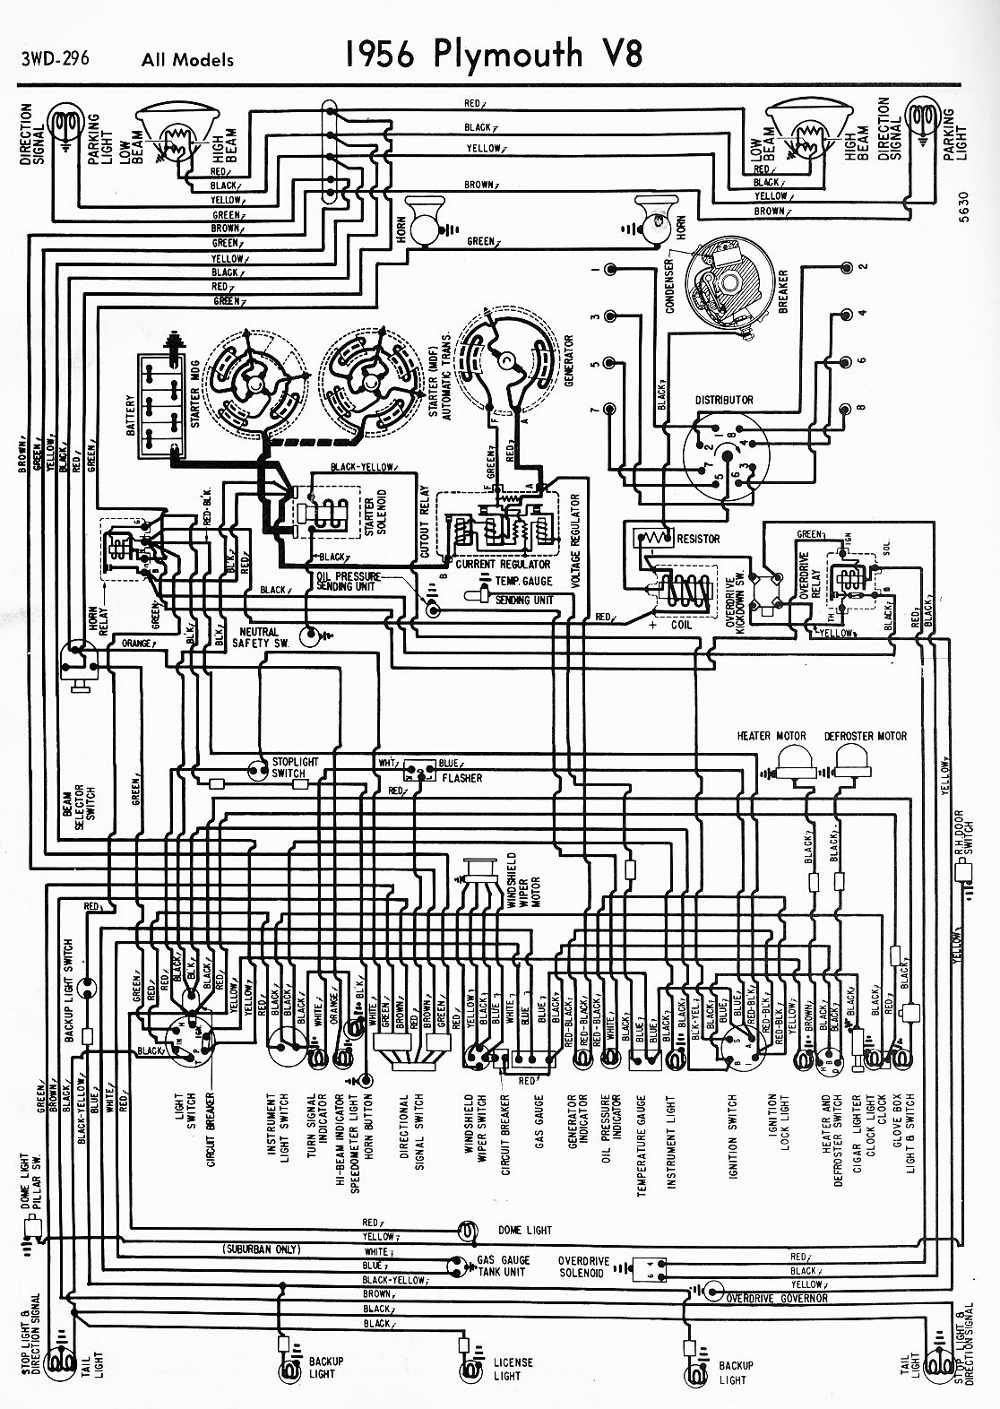 wiring diagrams of 1958 plymouth 6 all models wiring diagram go wiring diagrams of 1958 mercury [ 1000 x 1409 Pixel ]